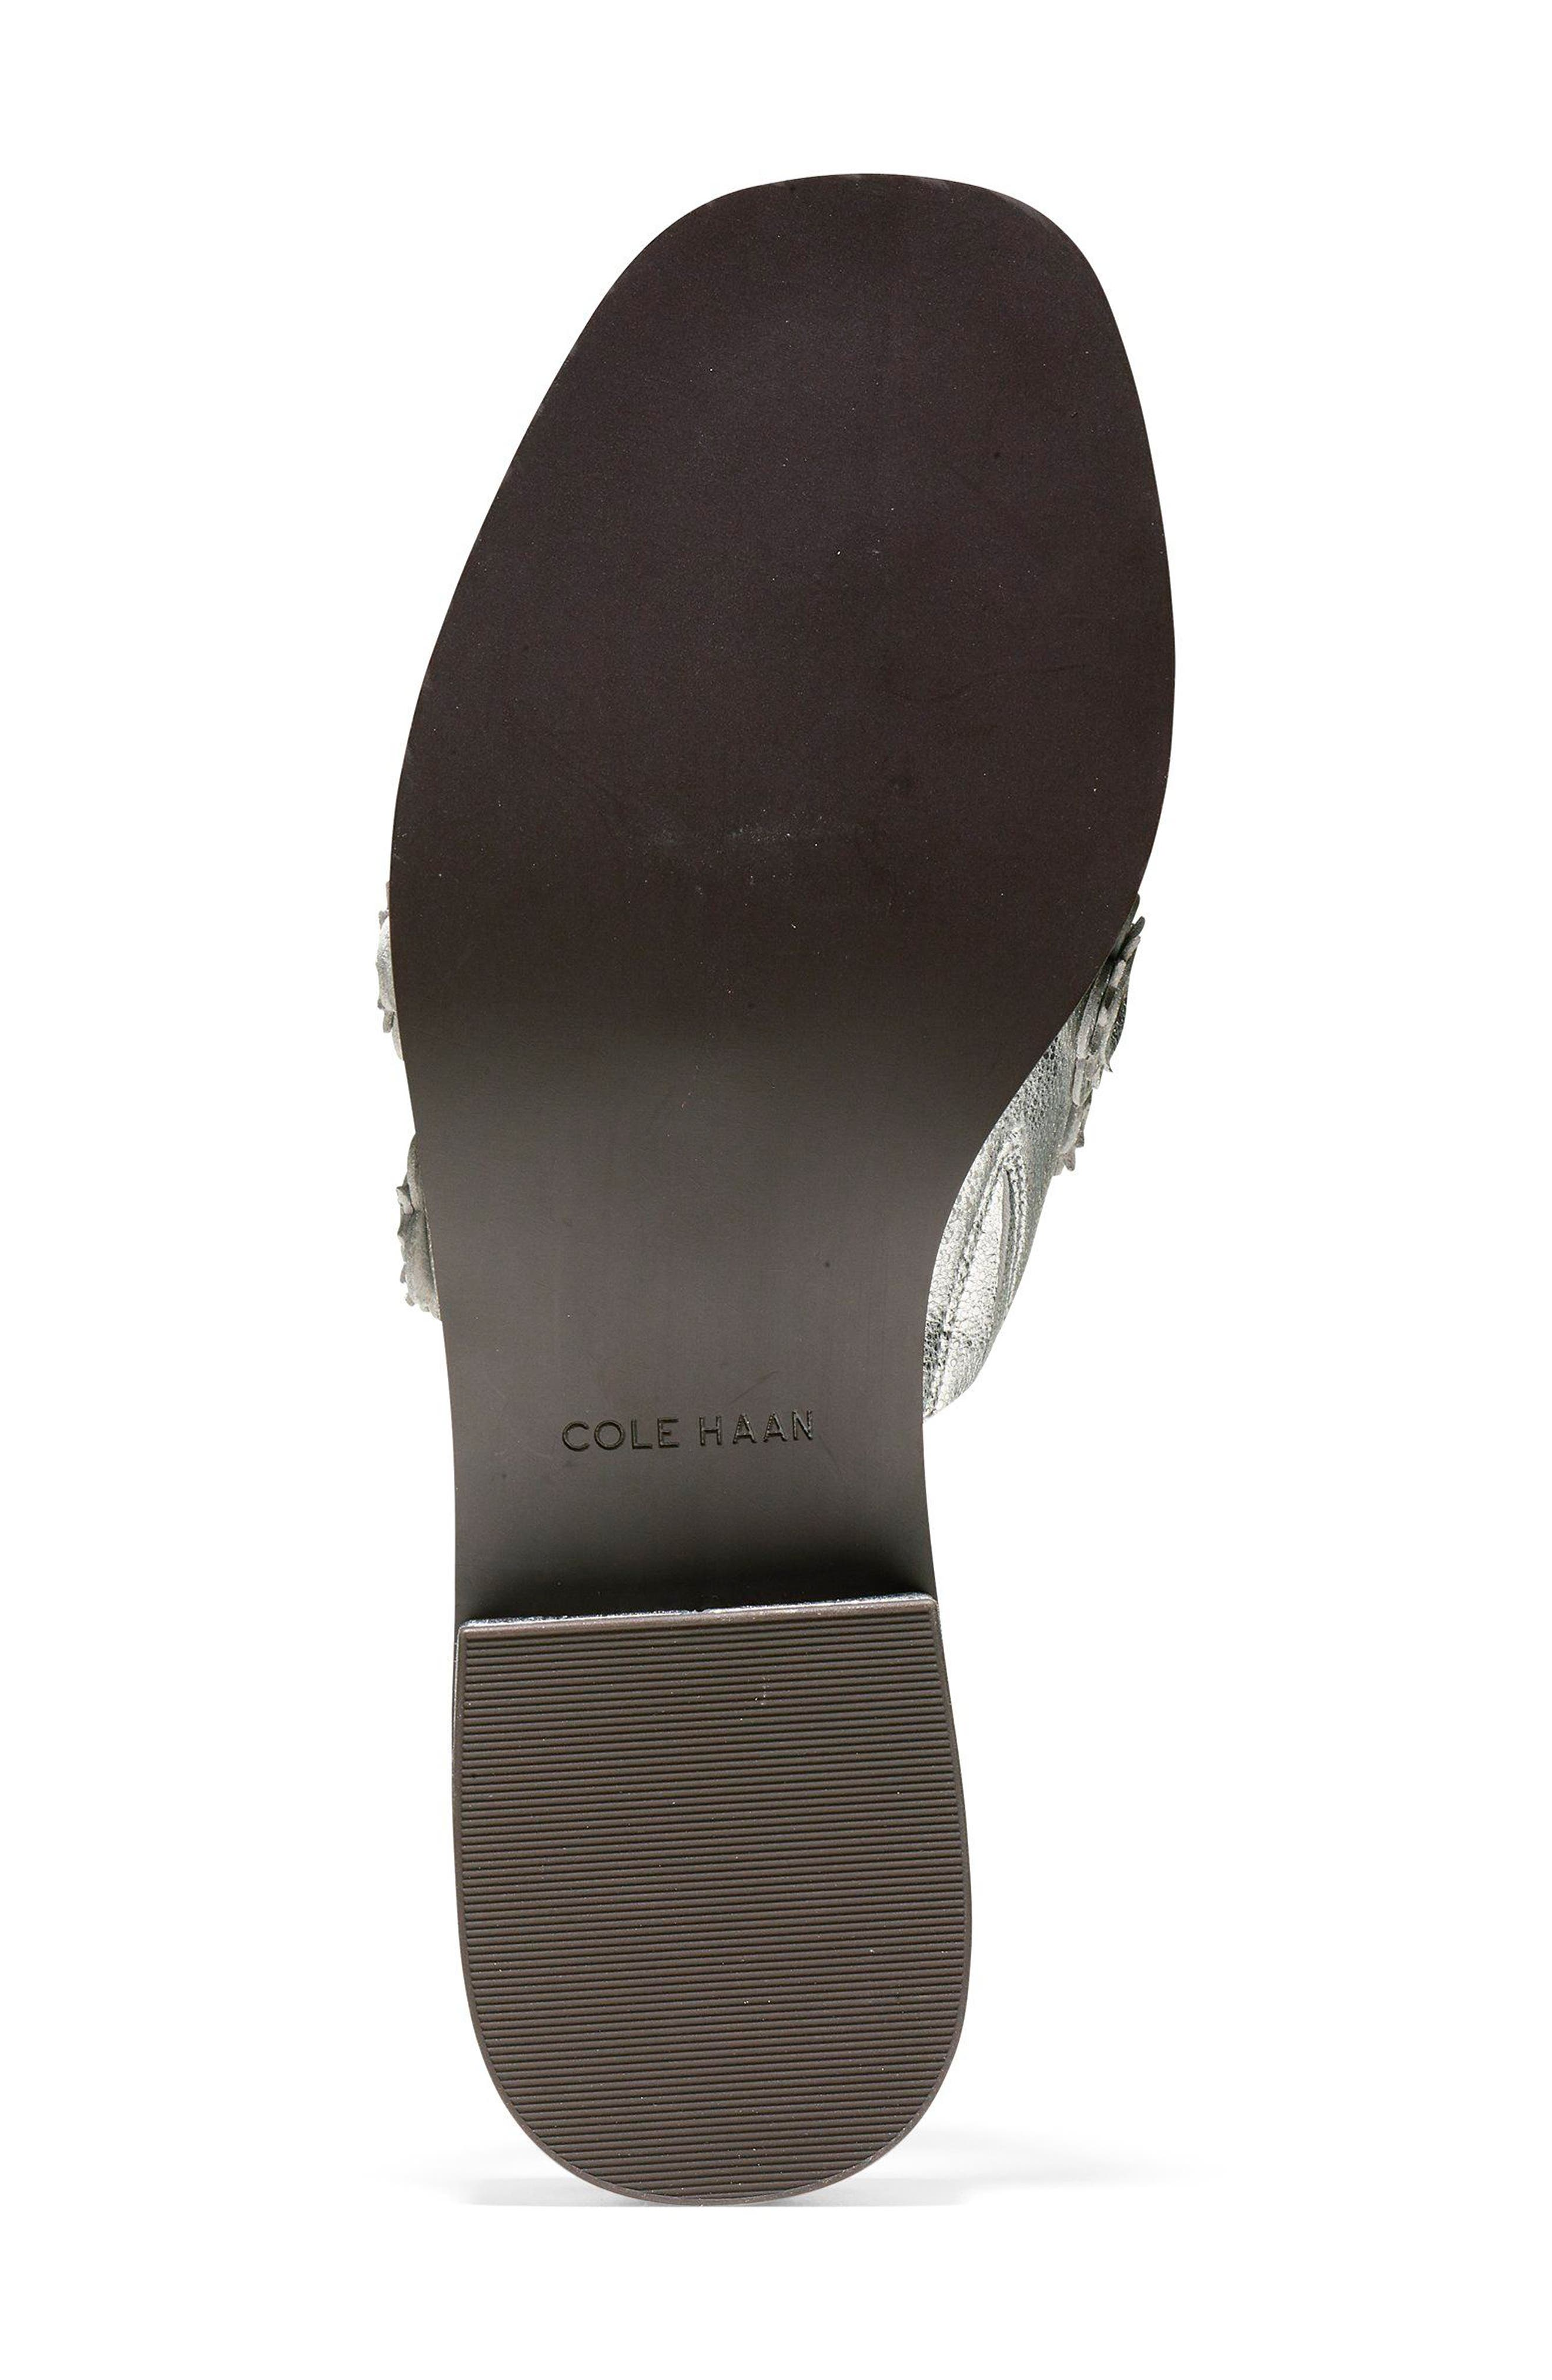 Carly Floral Sandal,                             Alternate thumbnail 6, color,                             SILVER METALLIC LEATHER